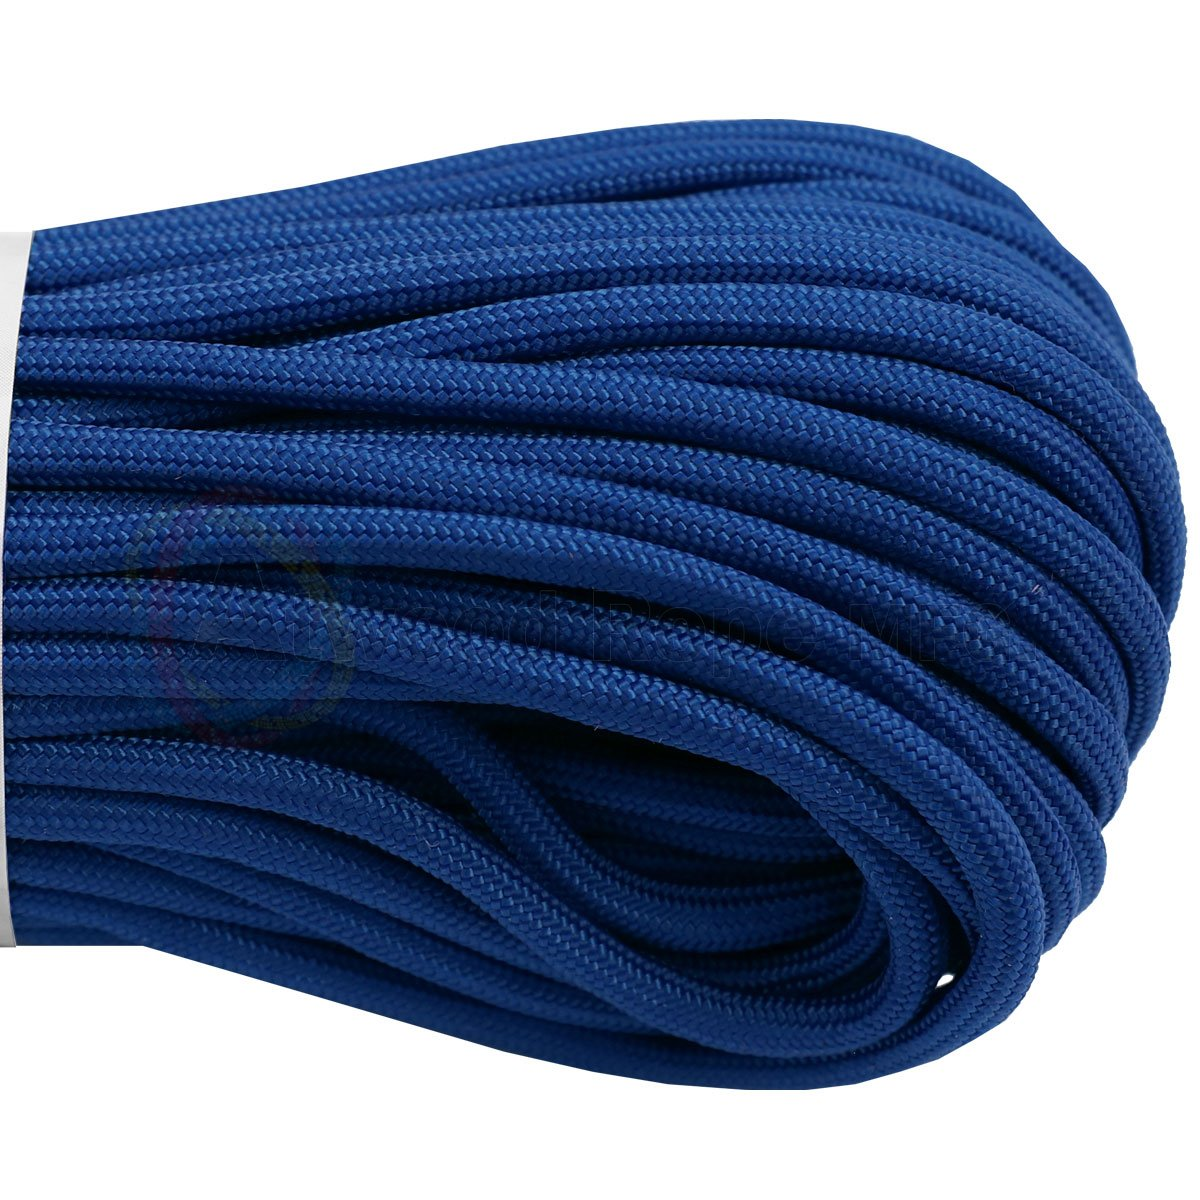 550 Type III Paracord Made in USA - 100 ft - Royal Blue